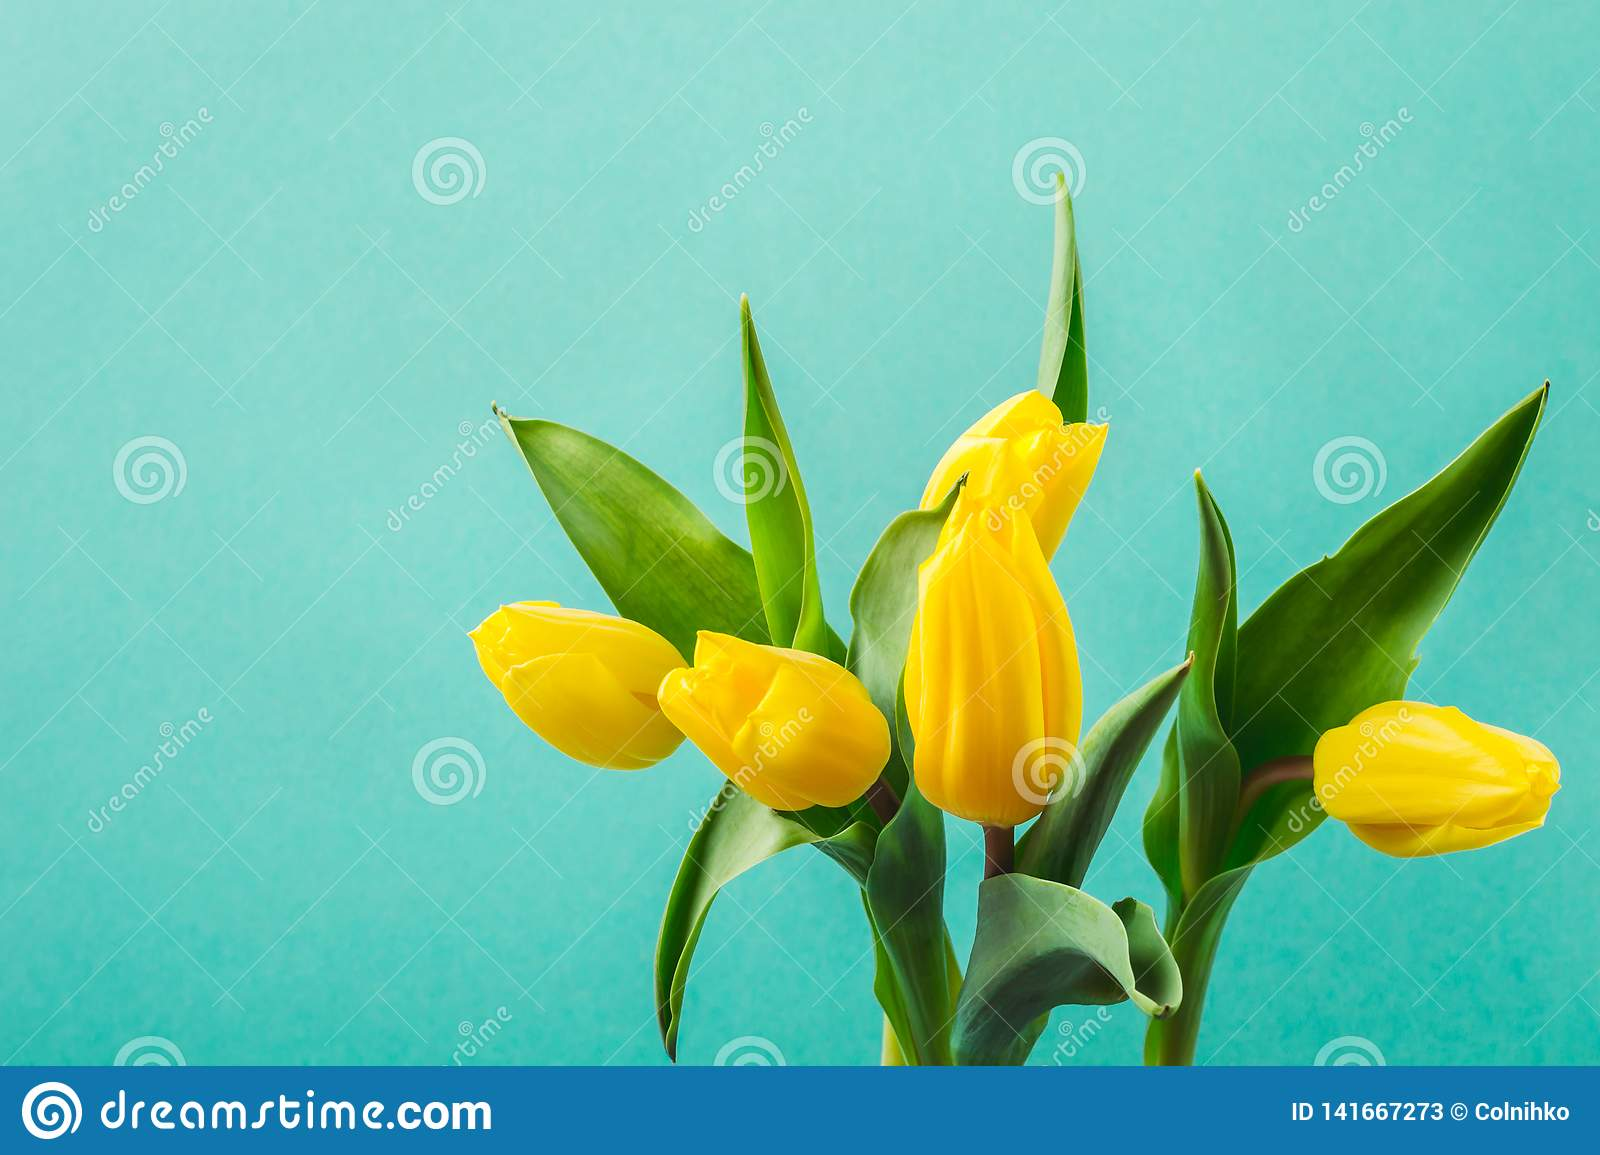 Beautiful yellow tulip flowers on turquoise background for greeting message. Holiday mock up